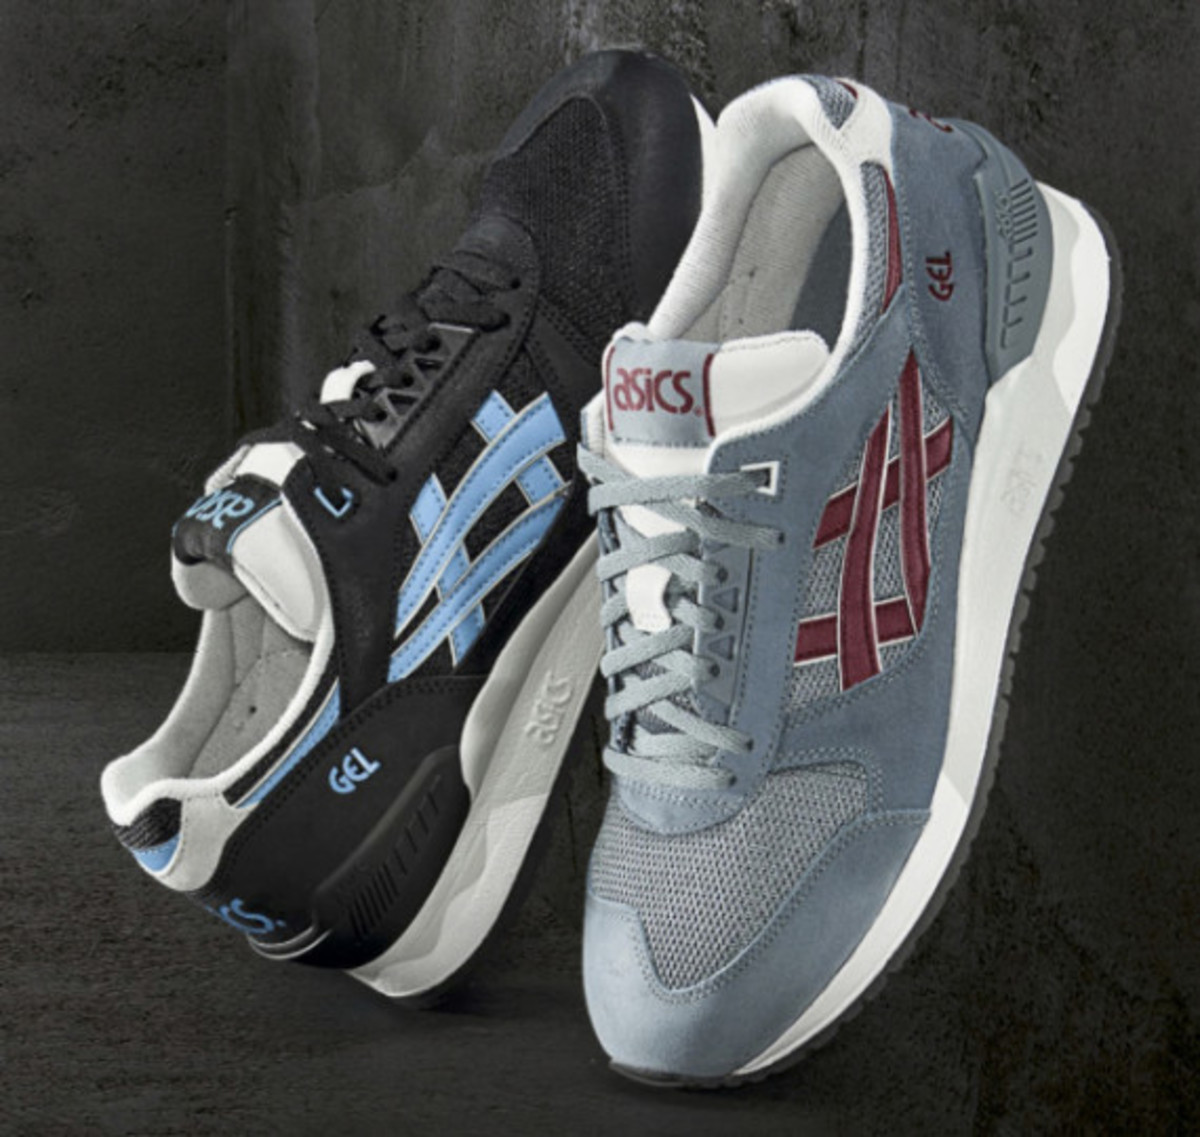 asics-fall-2015-footwear-collection-preview-03